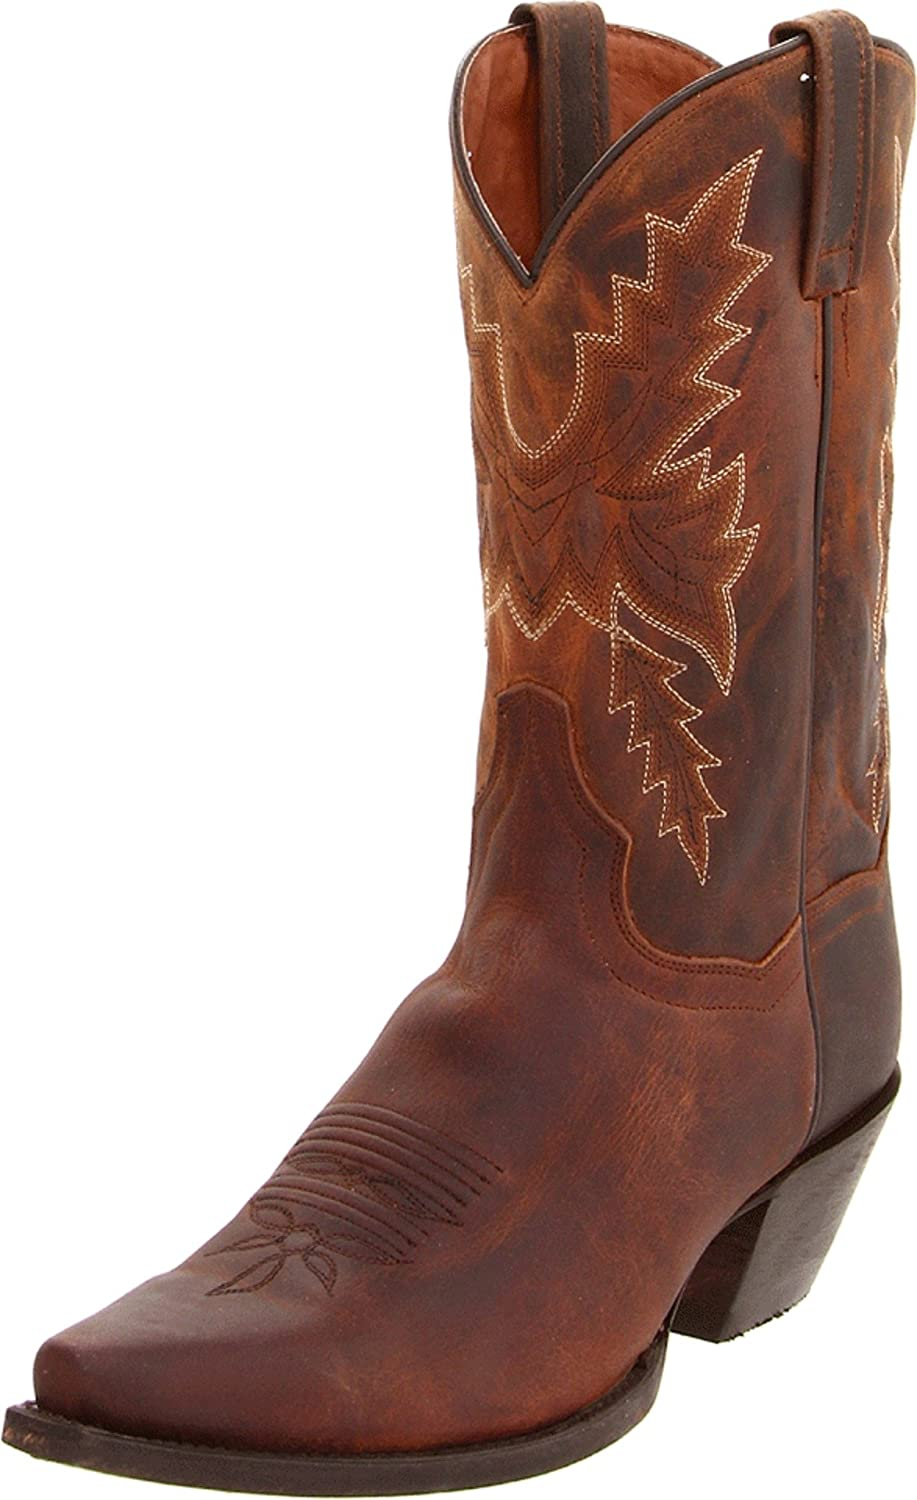 Dan Post Women's DP3548 Boot B007C8B3TU 9 B(M) US|Bay Apache